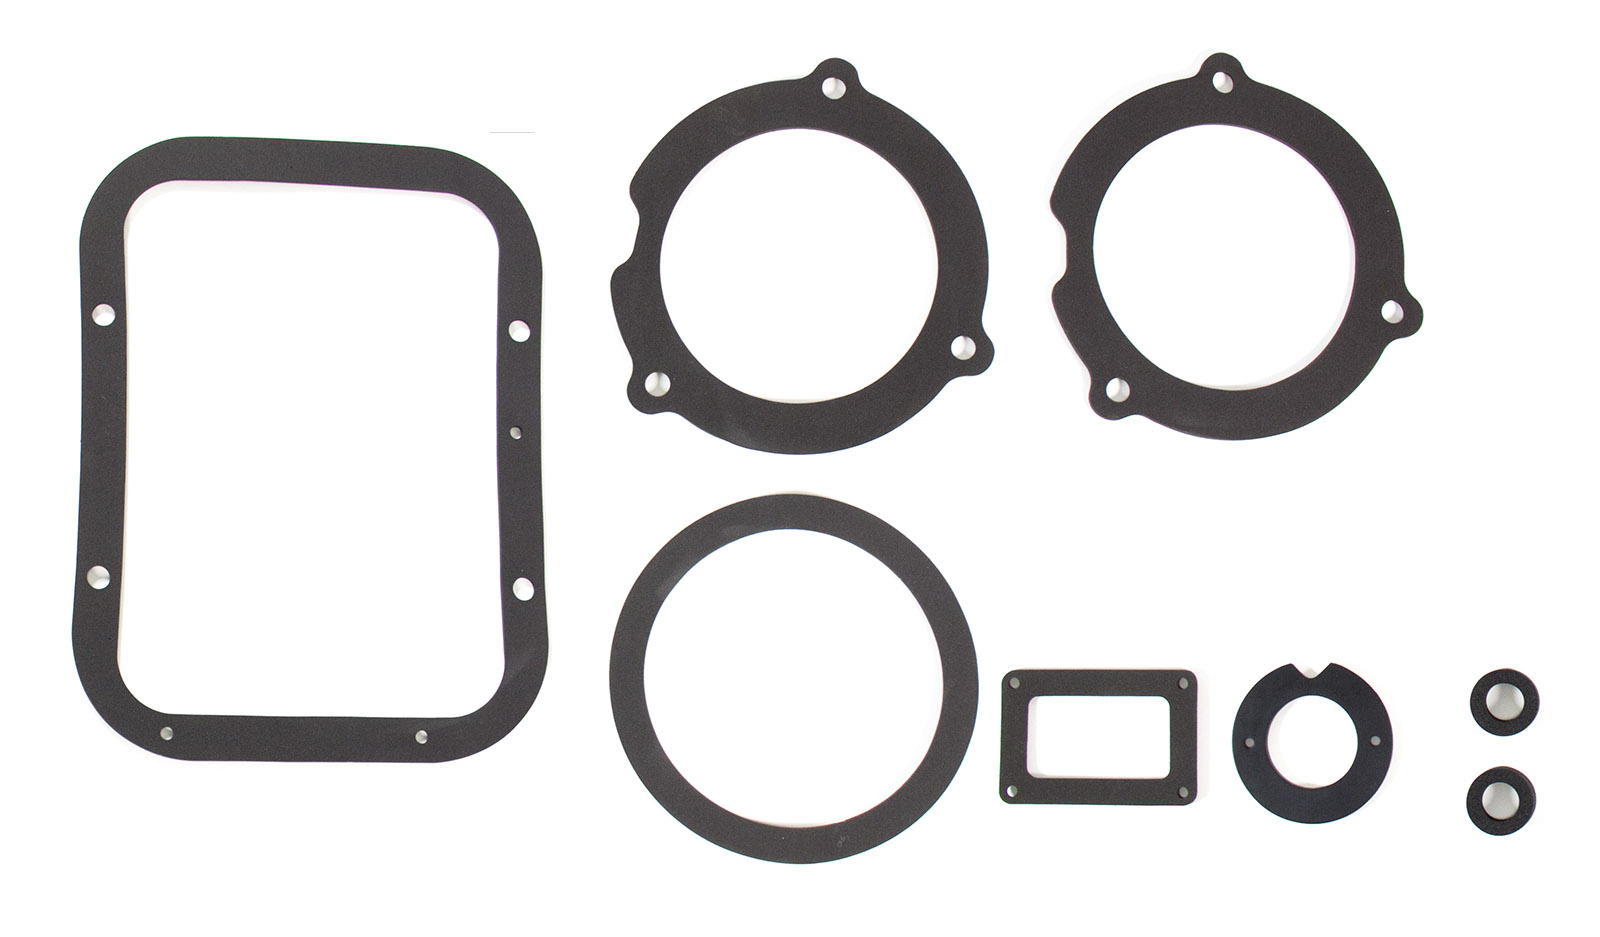 Chevy Deluxe Heater Seal Kit